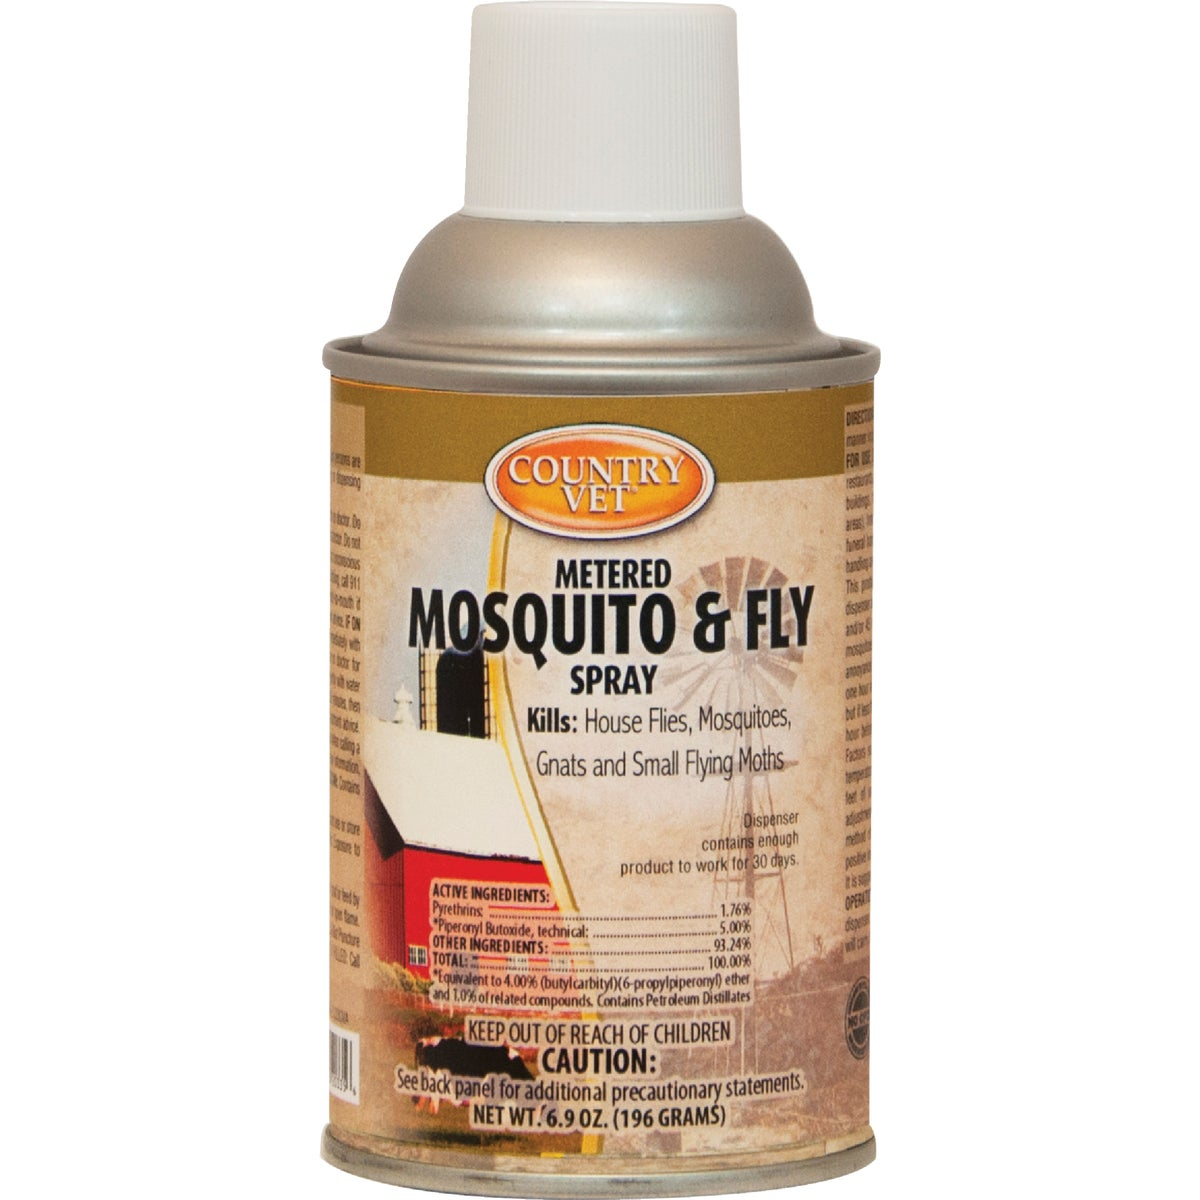 METERED MOSQUITO SPRAY - 34-2033CVA by Zep Enforcer Inc